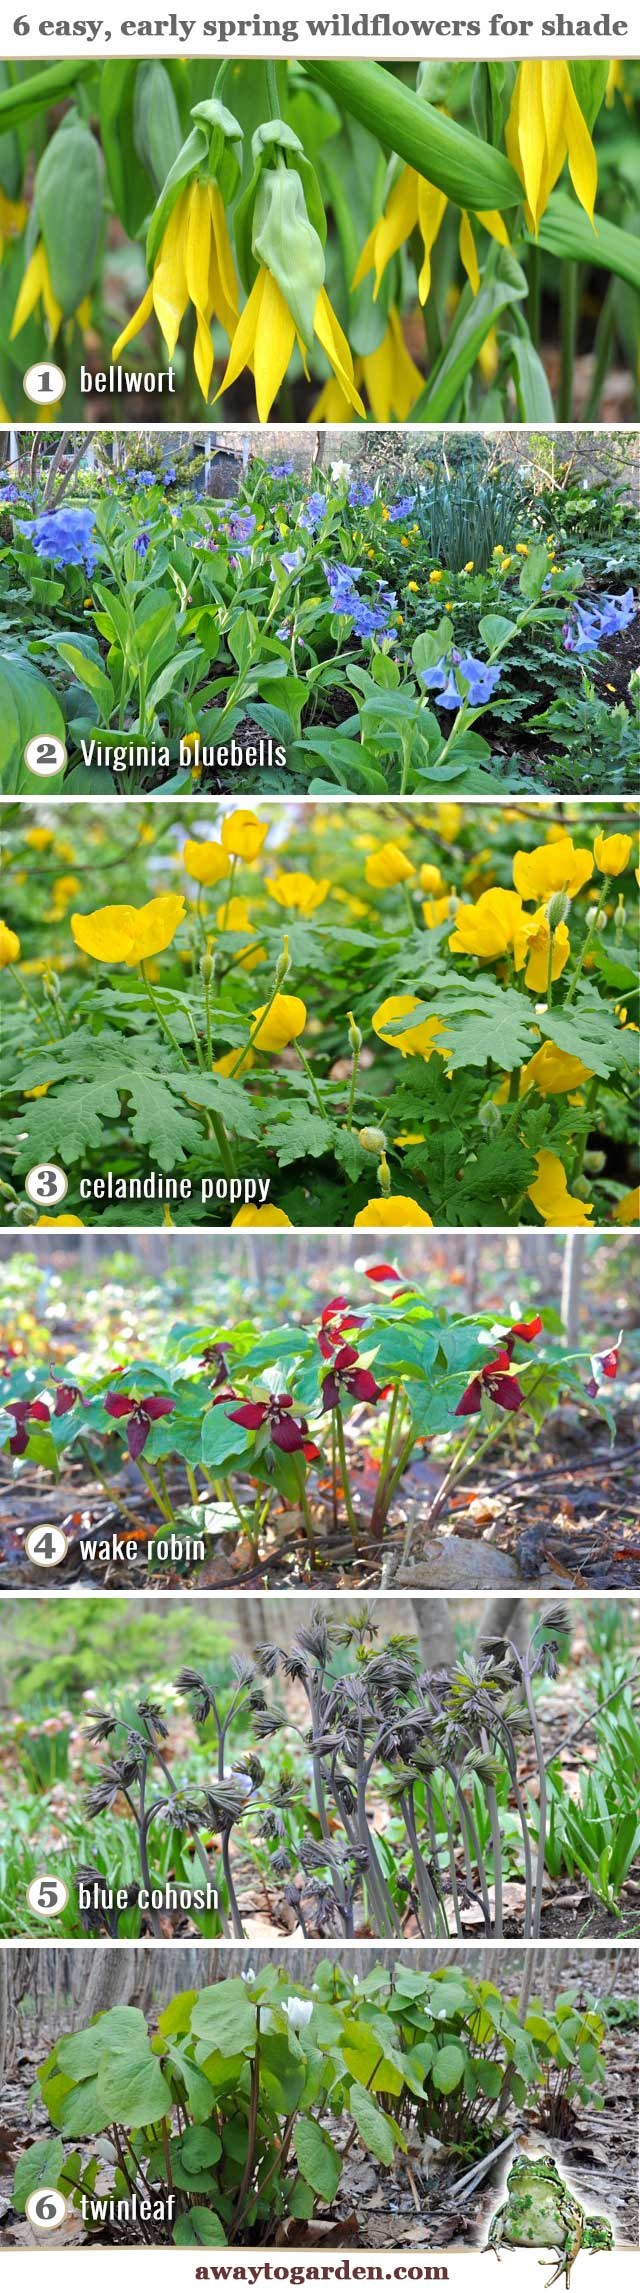 6 early native spring wildflowers for shade a way to garden 6 wildflowers for shadenames mightylinksfo